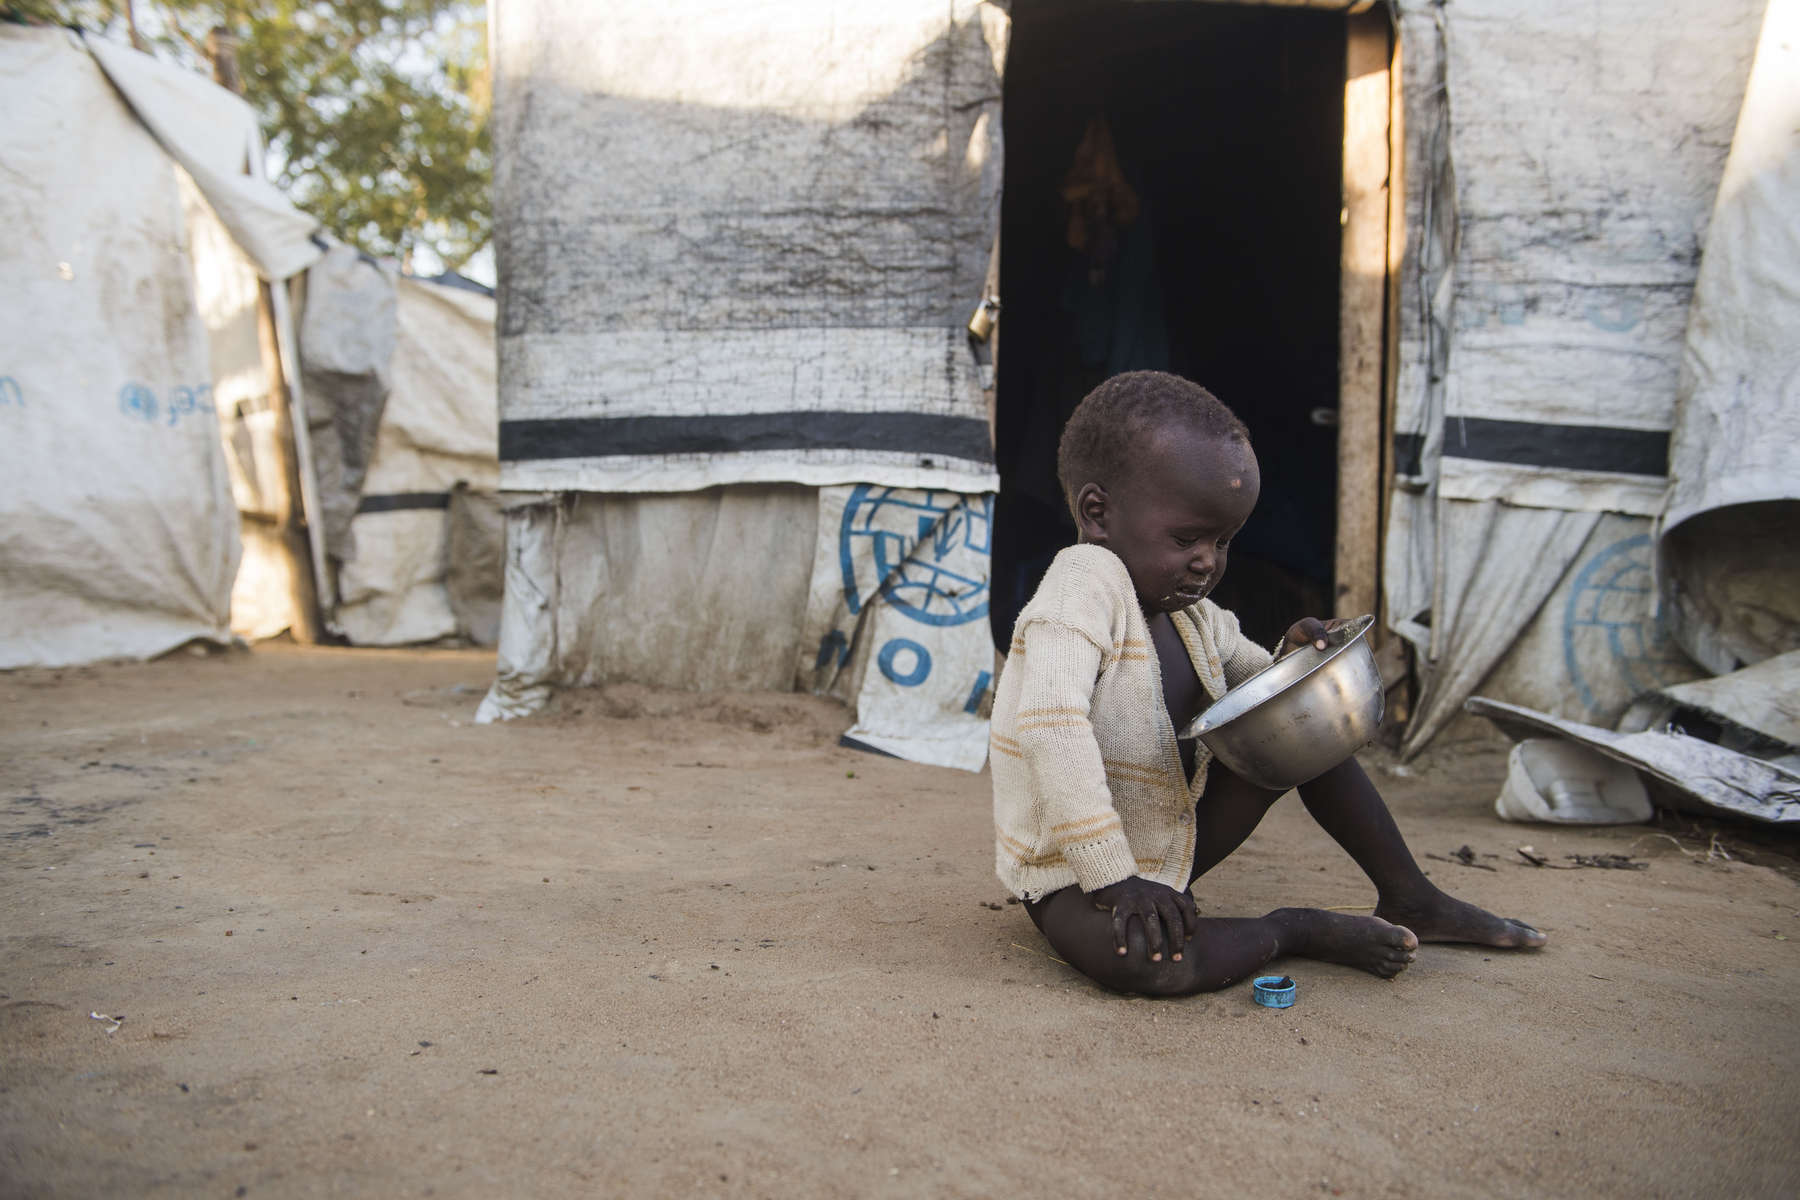 A young boy looks at his empty food bowl, in the Protection of Civilians Site adjacent to the United Nations Mission in South Sudan base in Bor on Tuesday, 31 Oct. in Bor, South Sudan.